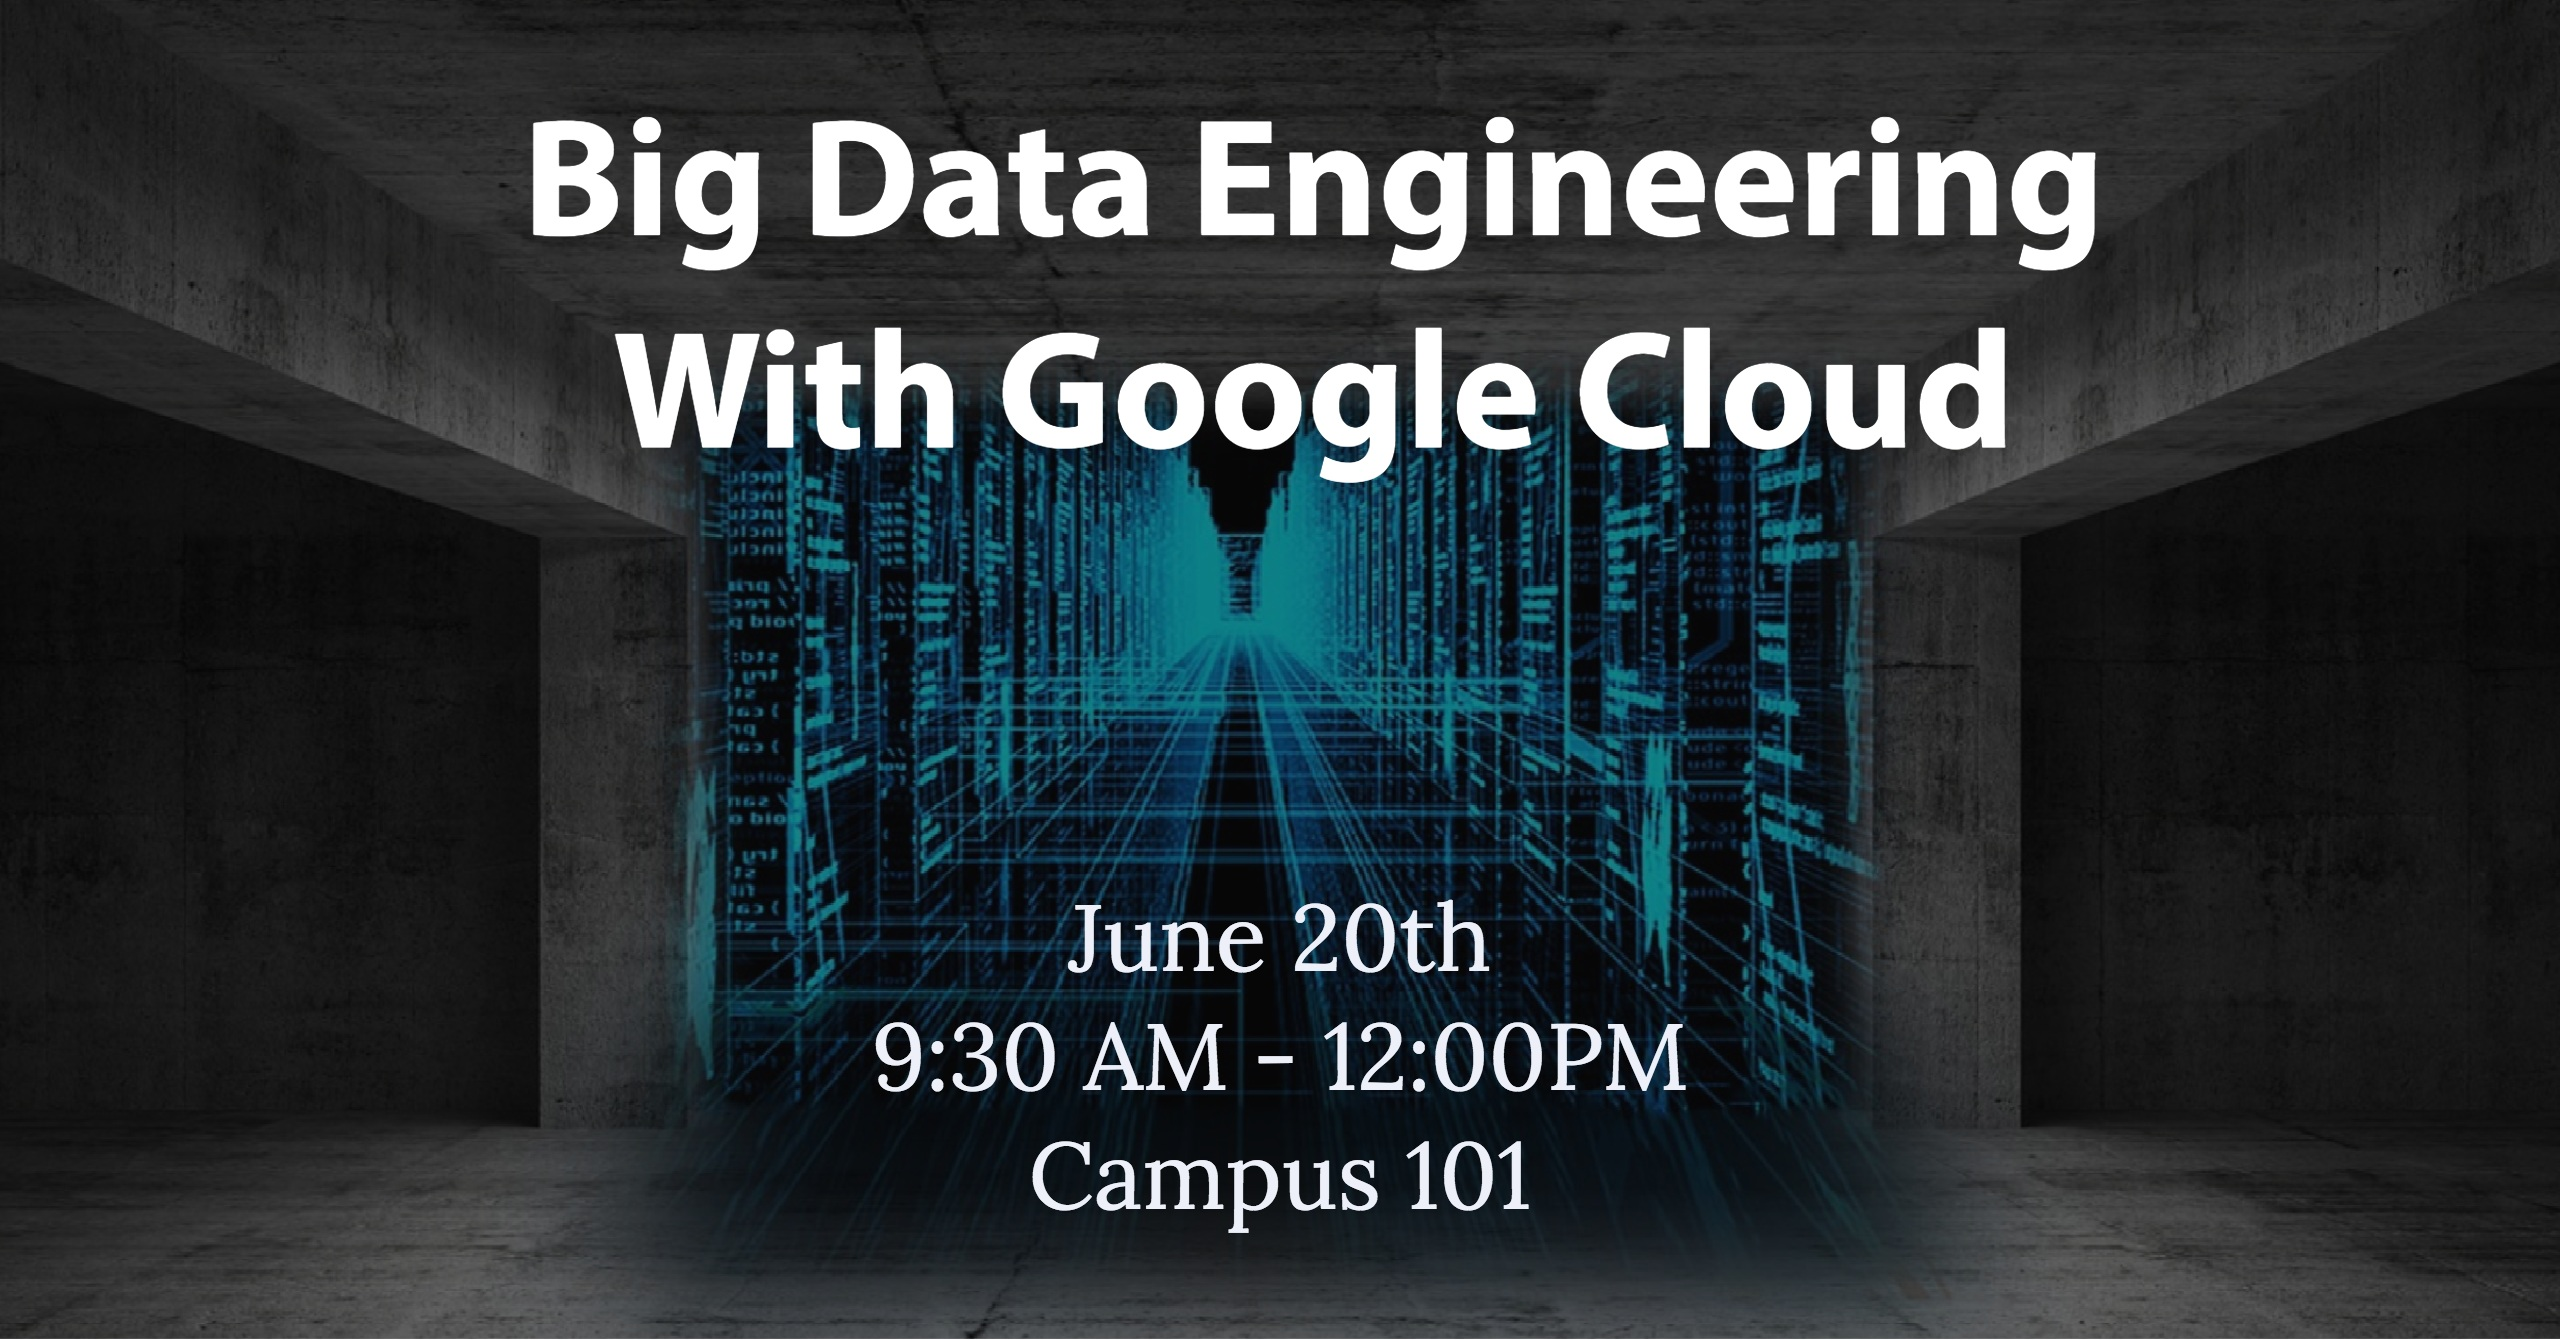 Big Data Engineering With Google Cloud 4.jpg